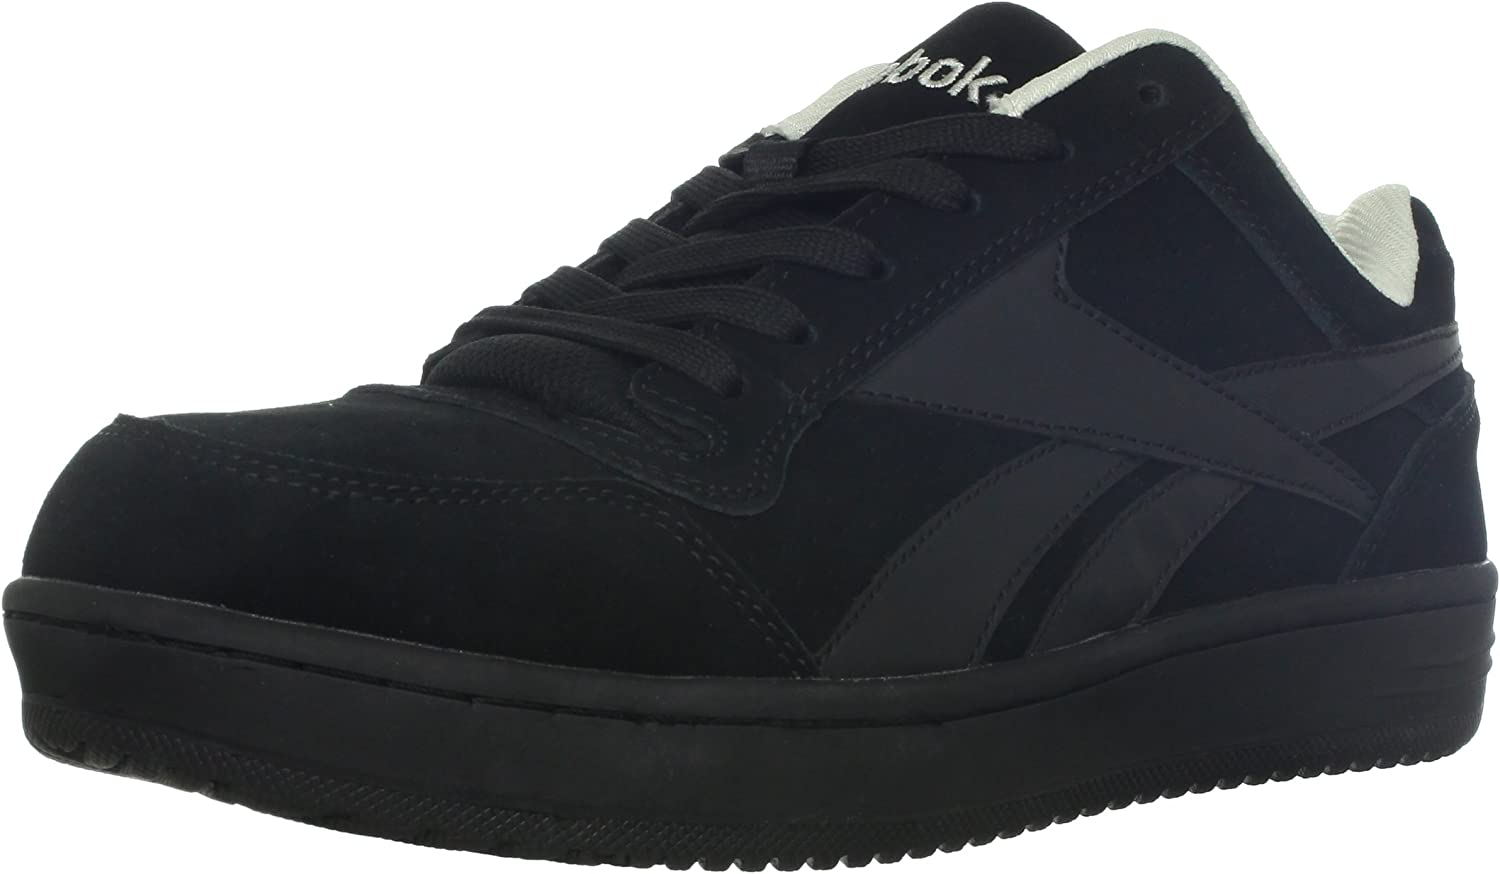 Reebok Work Men s Soyay RB1910 Skate Style EH Safety Shoe